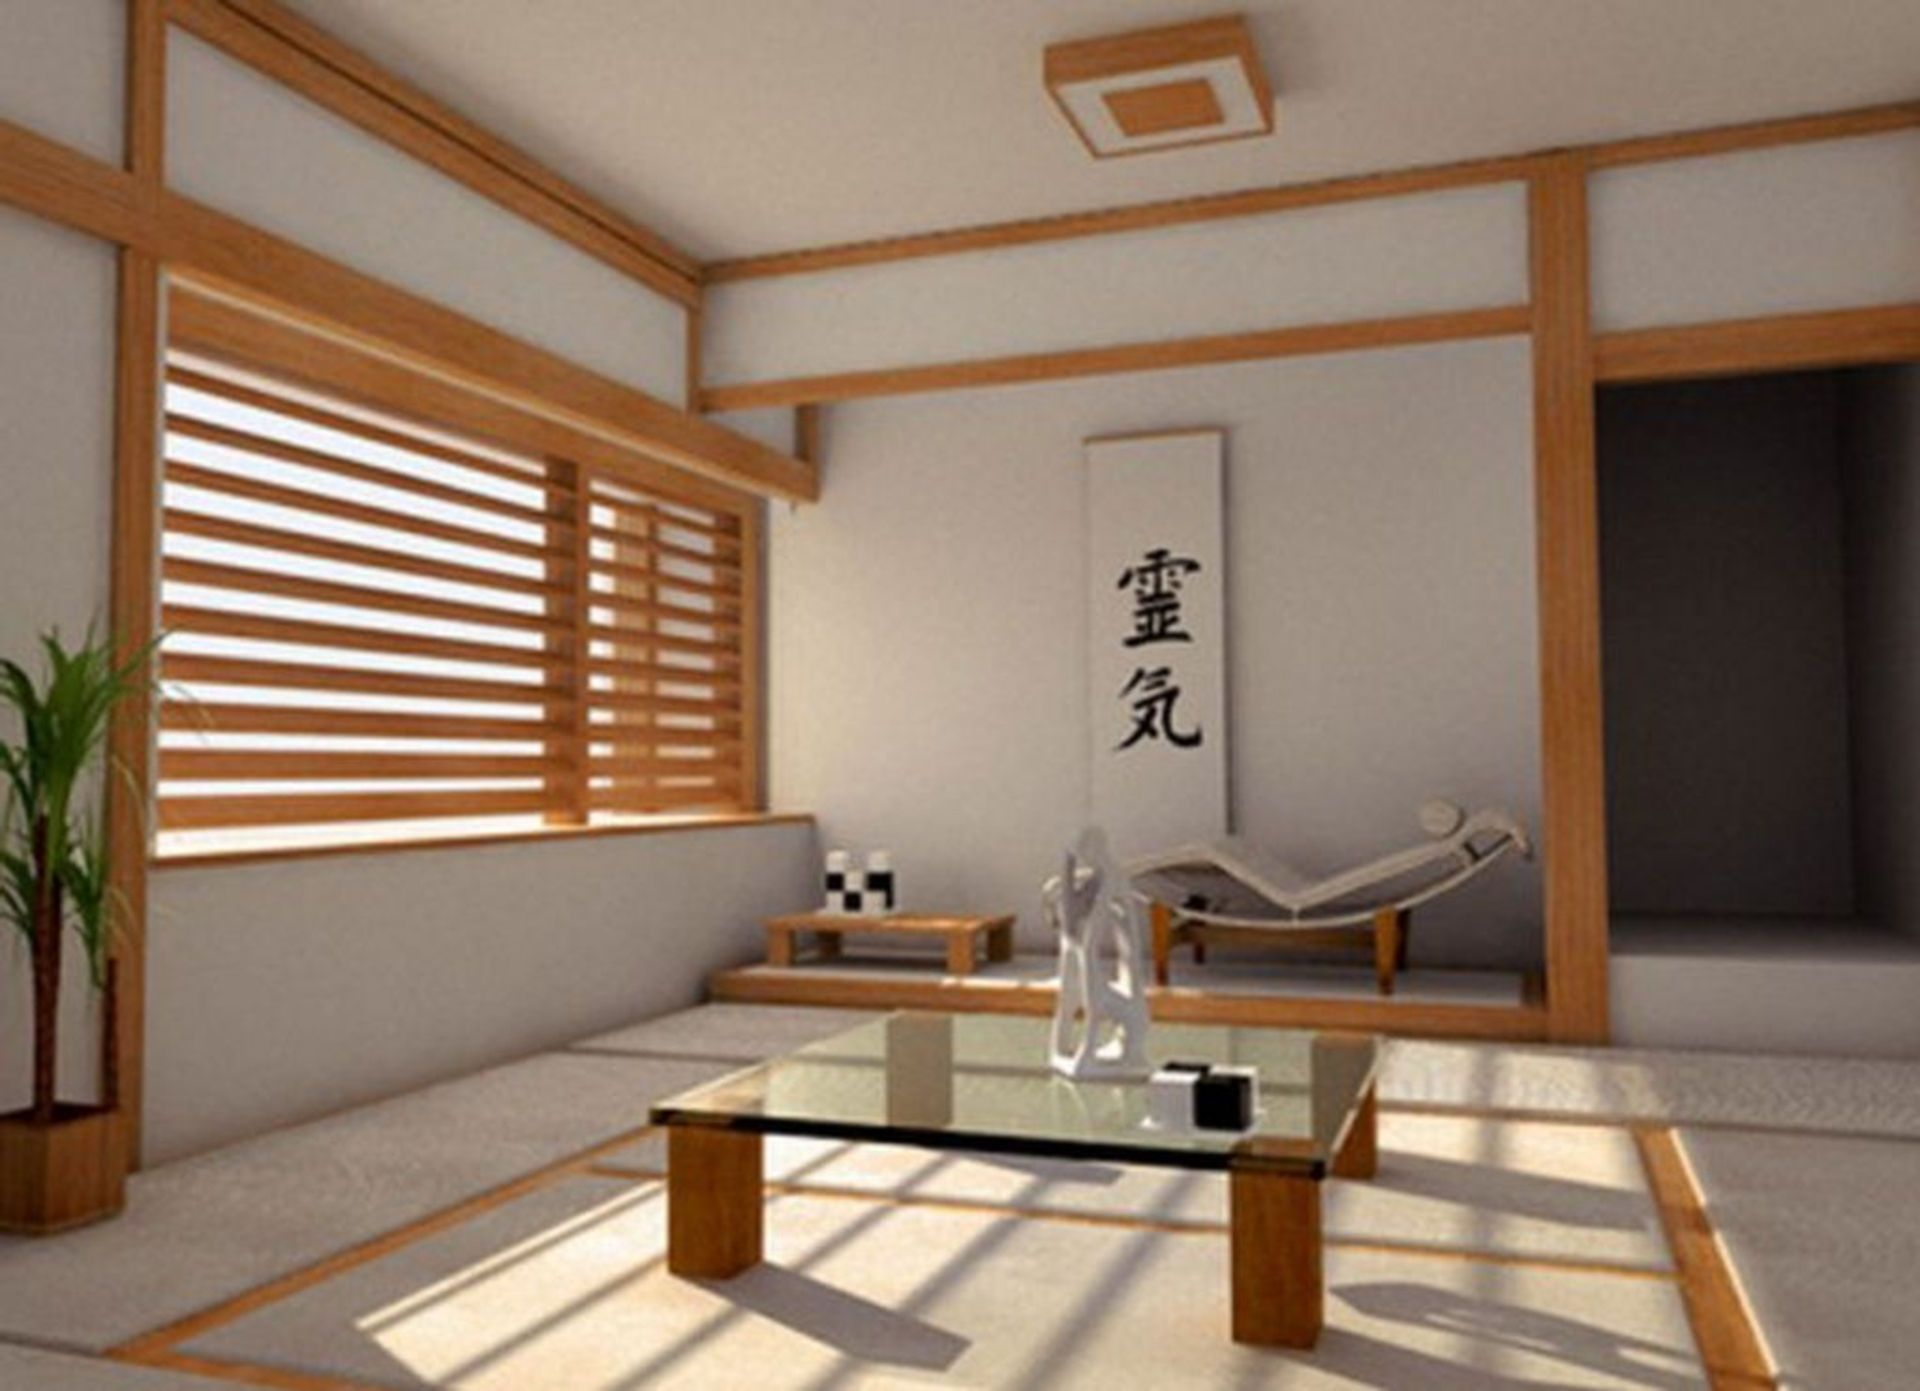 japanese design homes. If you have a small house and want to rearrange the home layout design  Japanese style can be Home Interior Design Ideas for Glamorous japanese recipes with sims 3